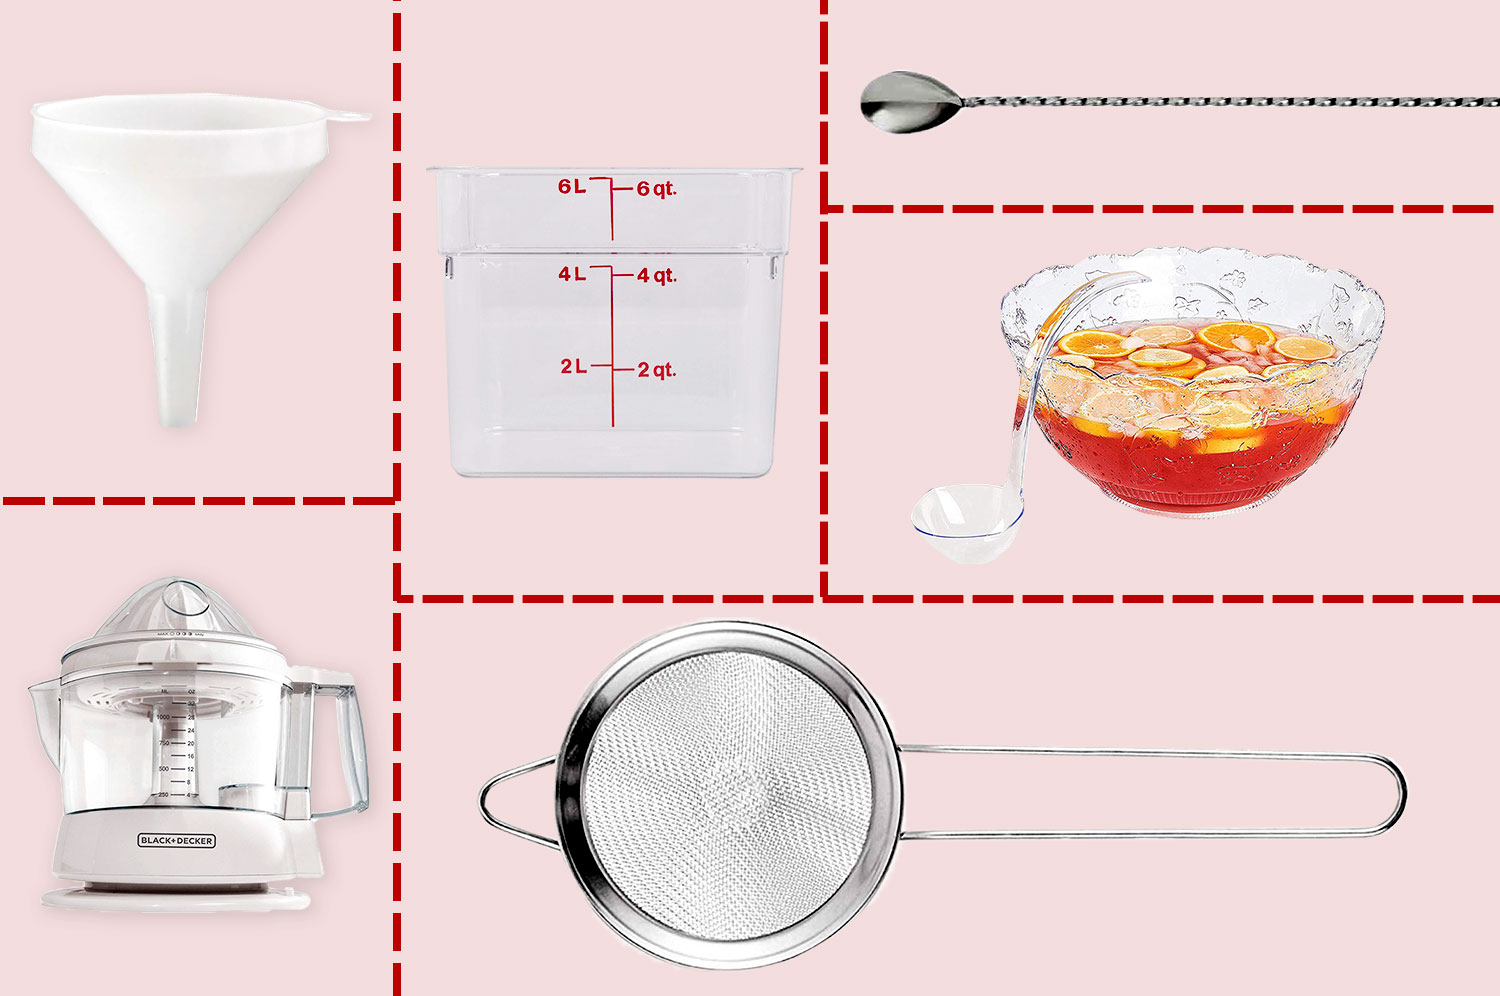 A funnel, cambro, cocktail spoon, punch bowl, electric juicer, and tea strainer arranged on a grid illustration